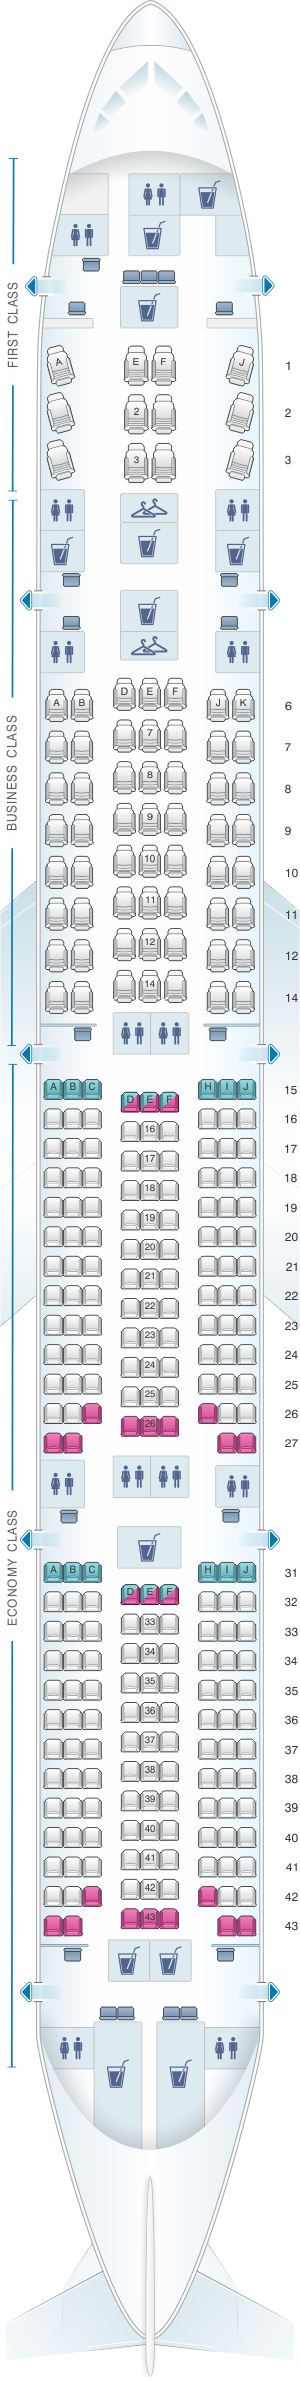 Seat map for TAAG Angola Airlines Boeing B777 300ER